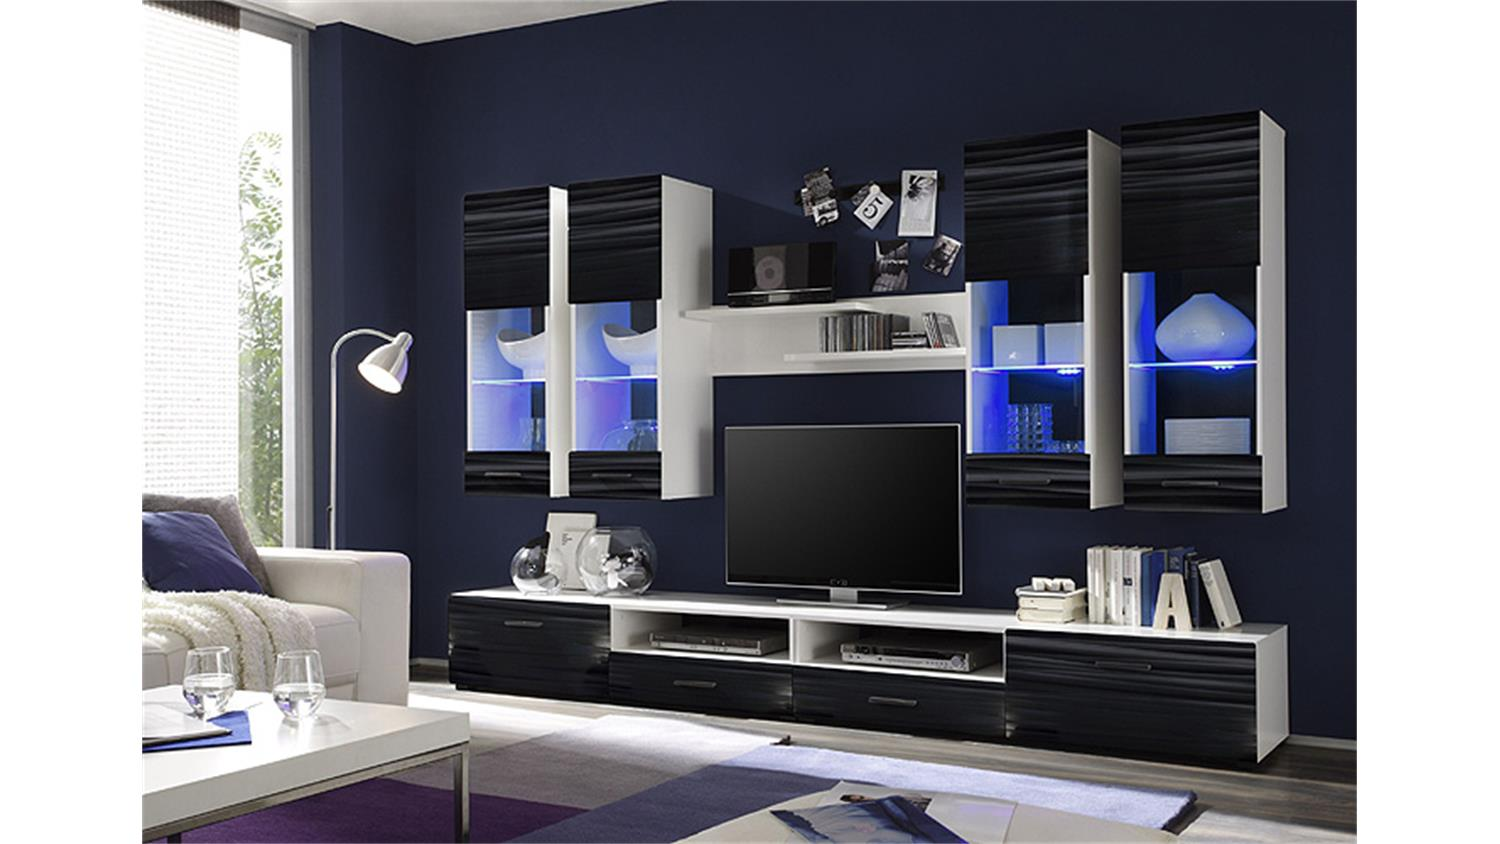 wohnwand attac 4 sahara schwarz 3d folie wei mit led. Black Bedroom Furniture Sets. Home Design Ideas